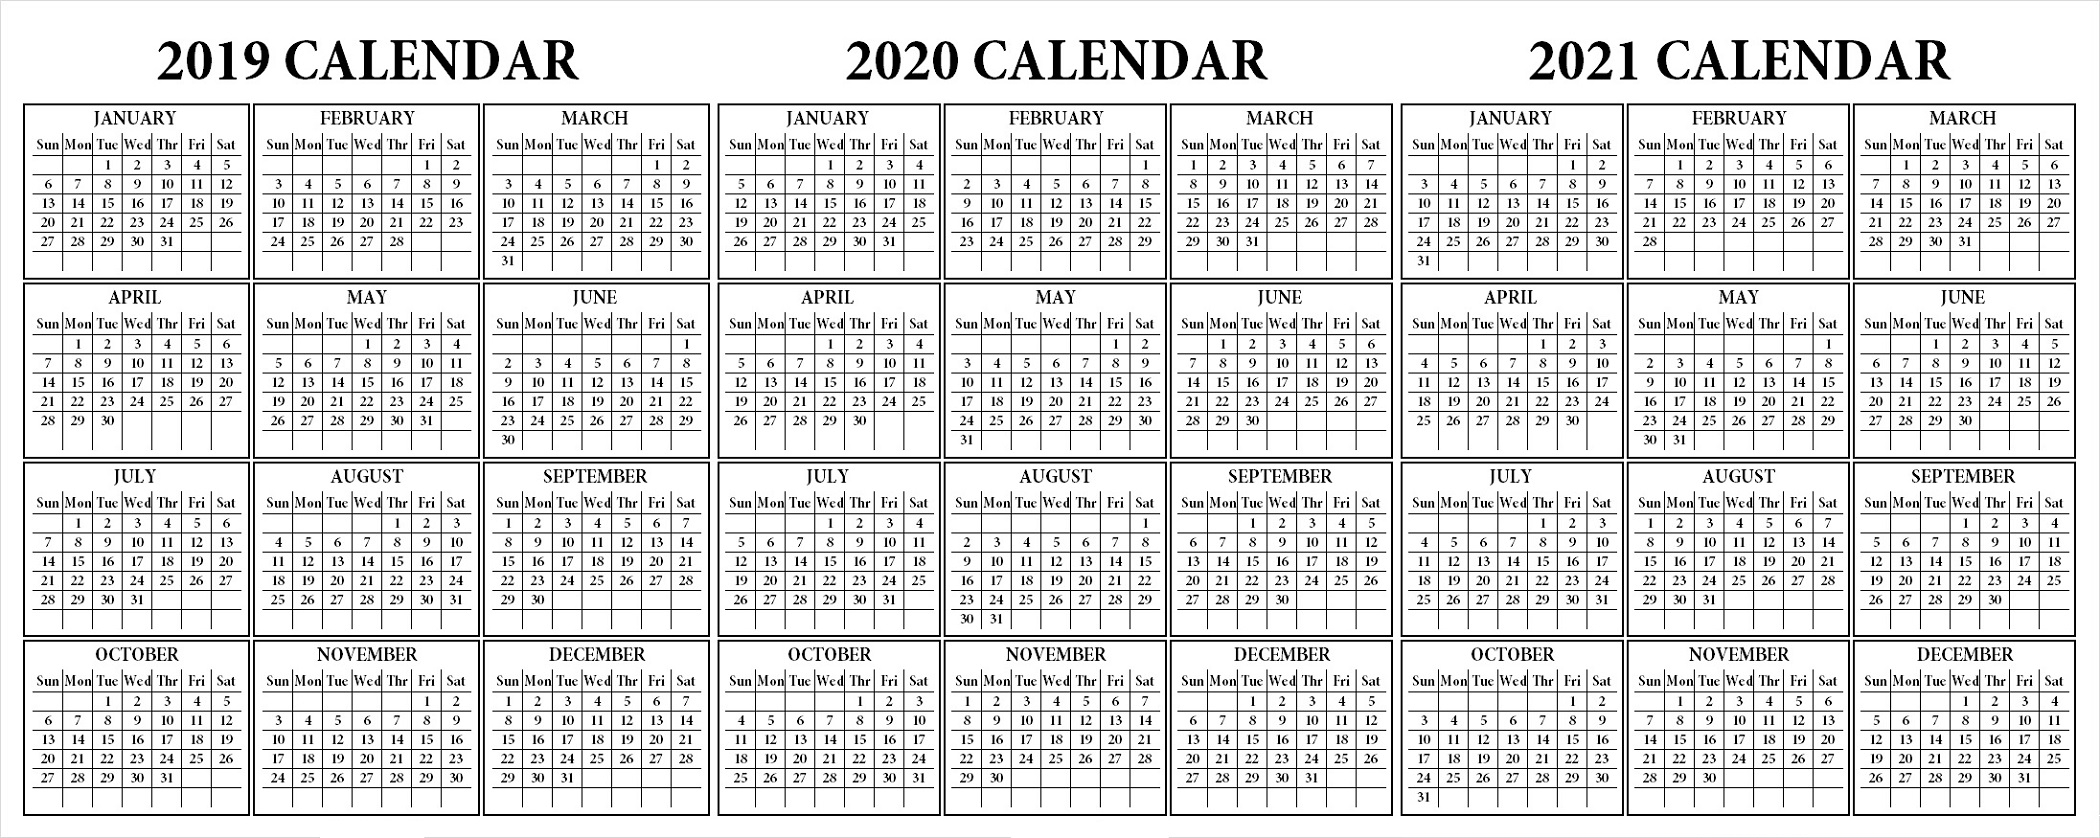 3 Year Calendar Printable 2019 2020 2021 For All Ages For for Three-Year Calendar 2019 2020 2021